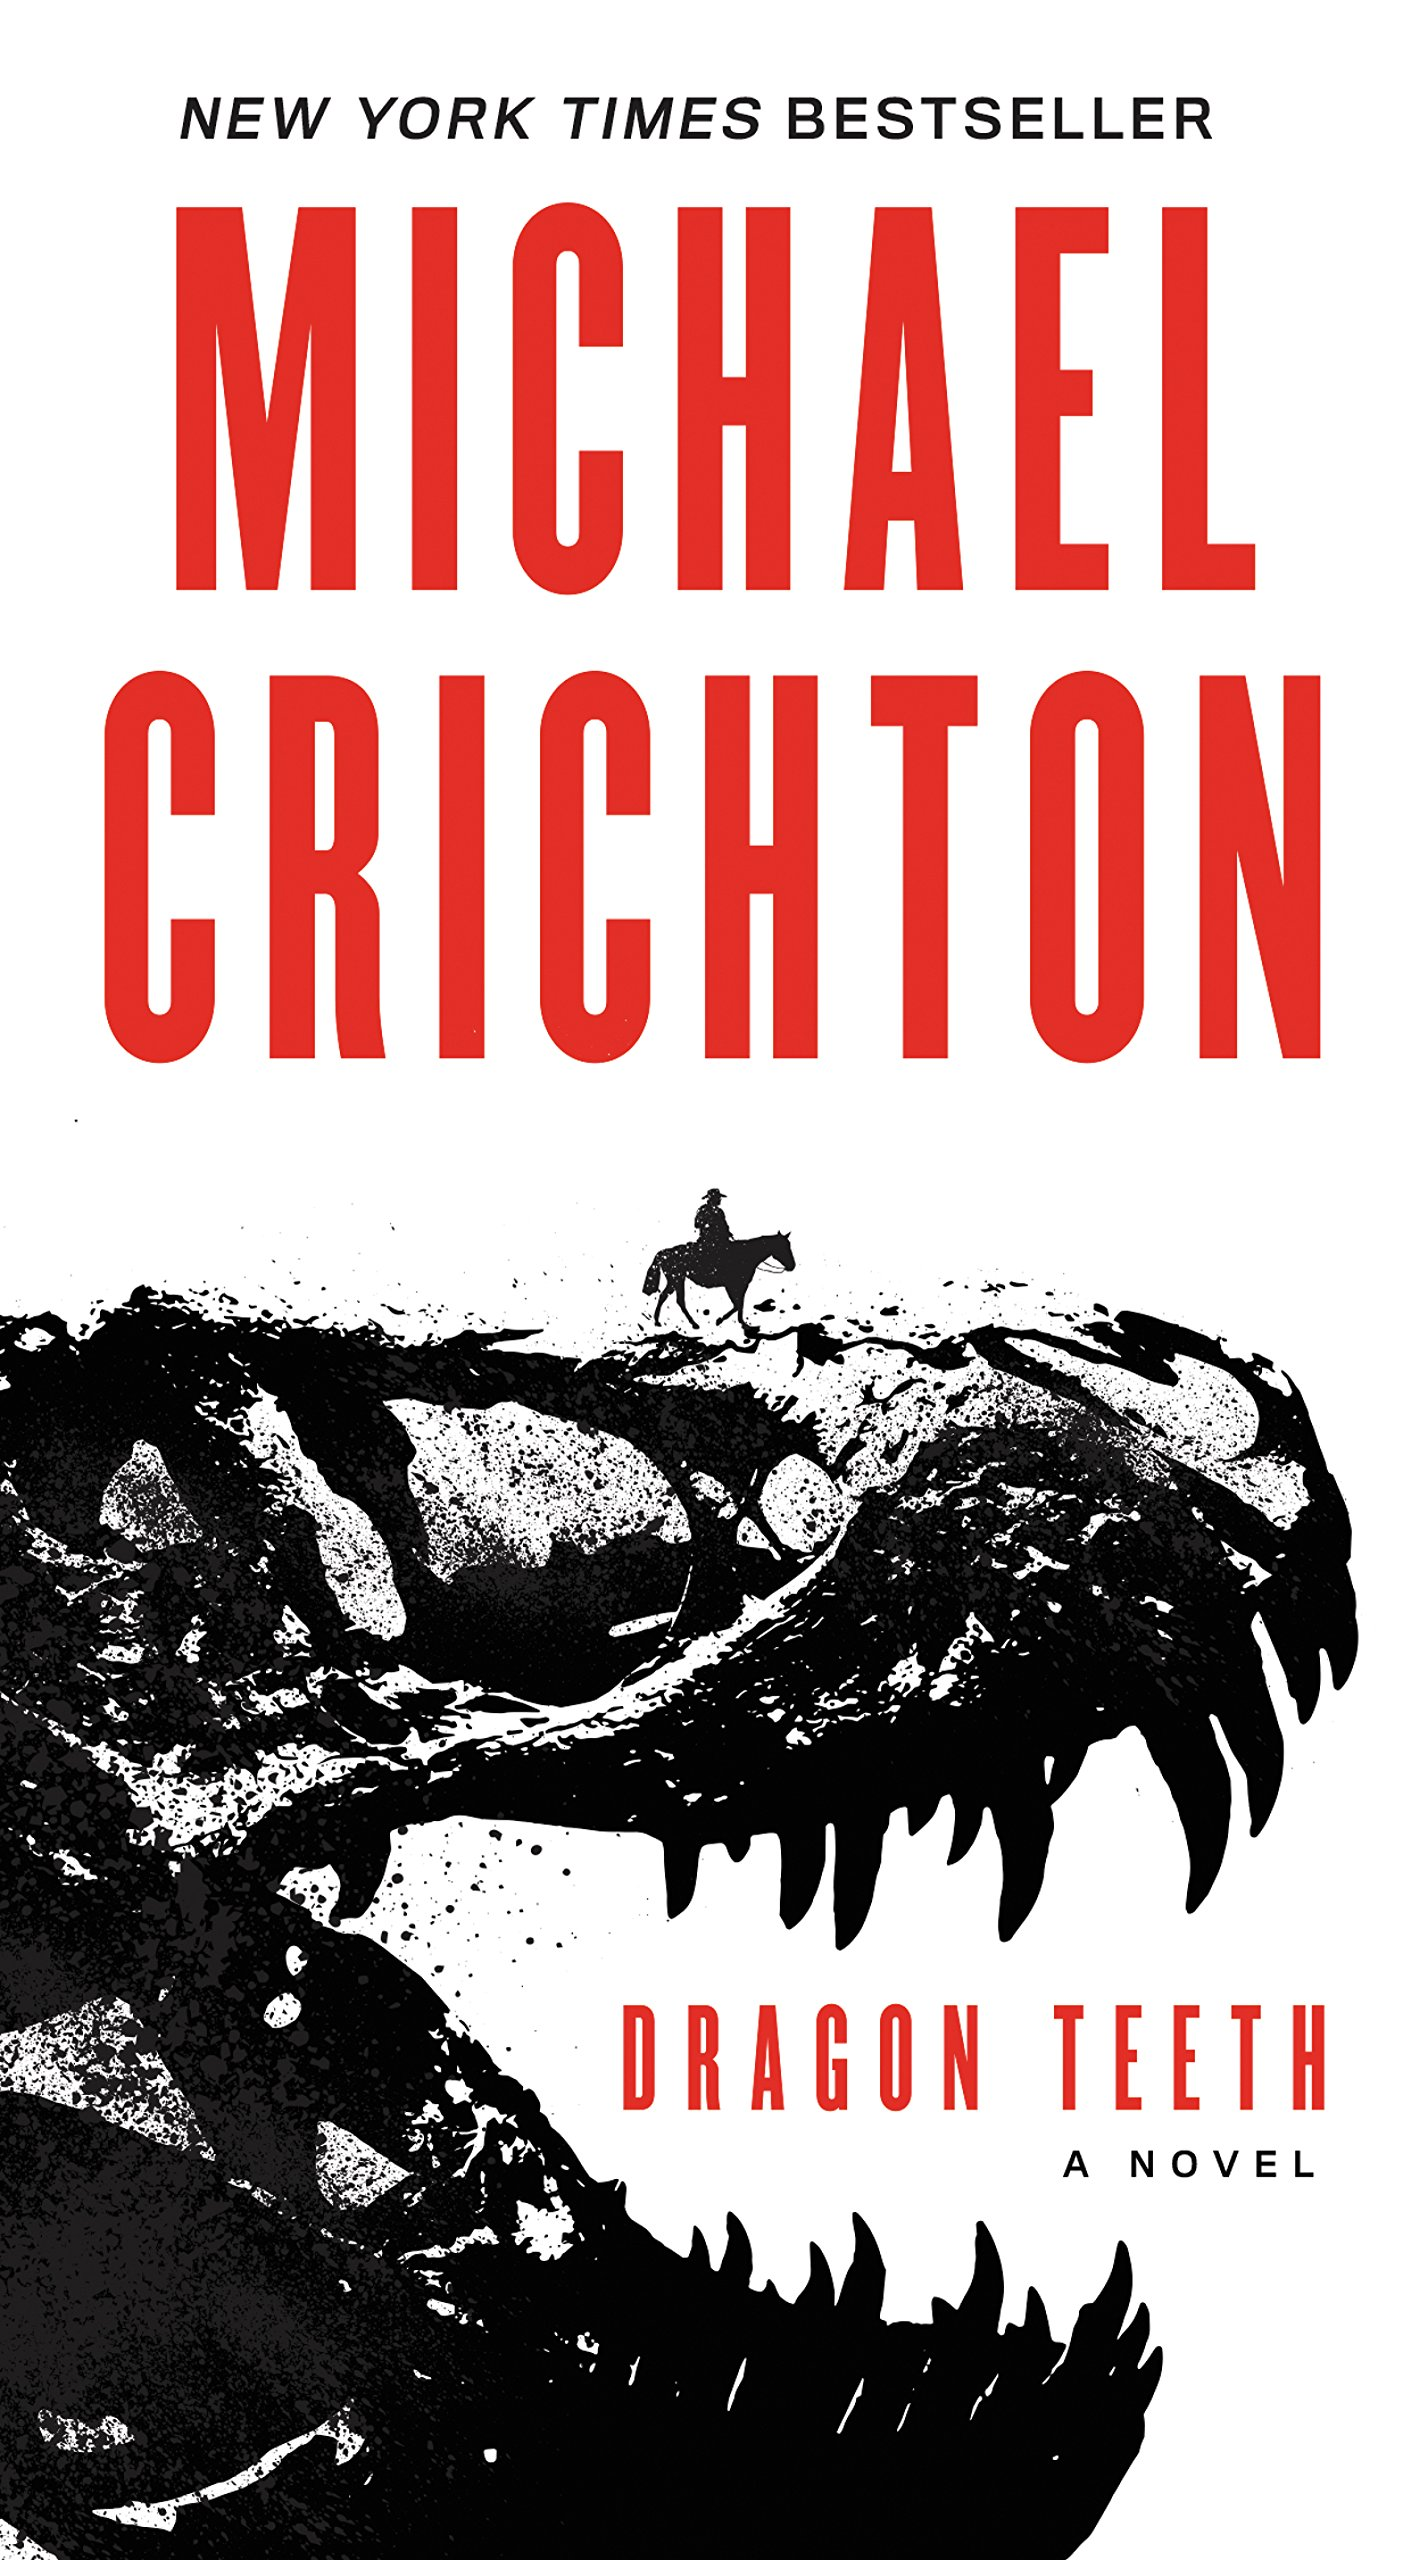 Michael Crichton - Dragon Teeth